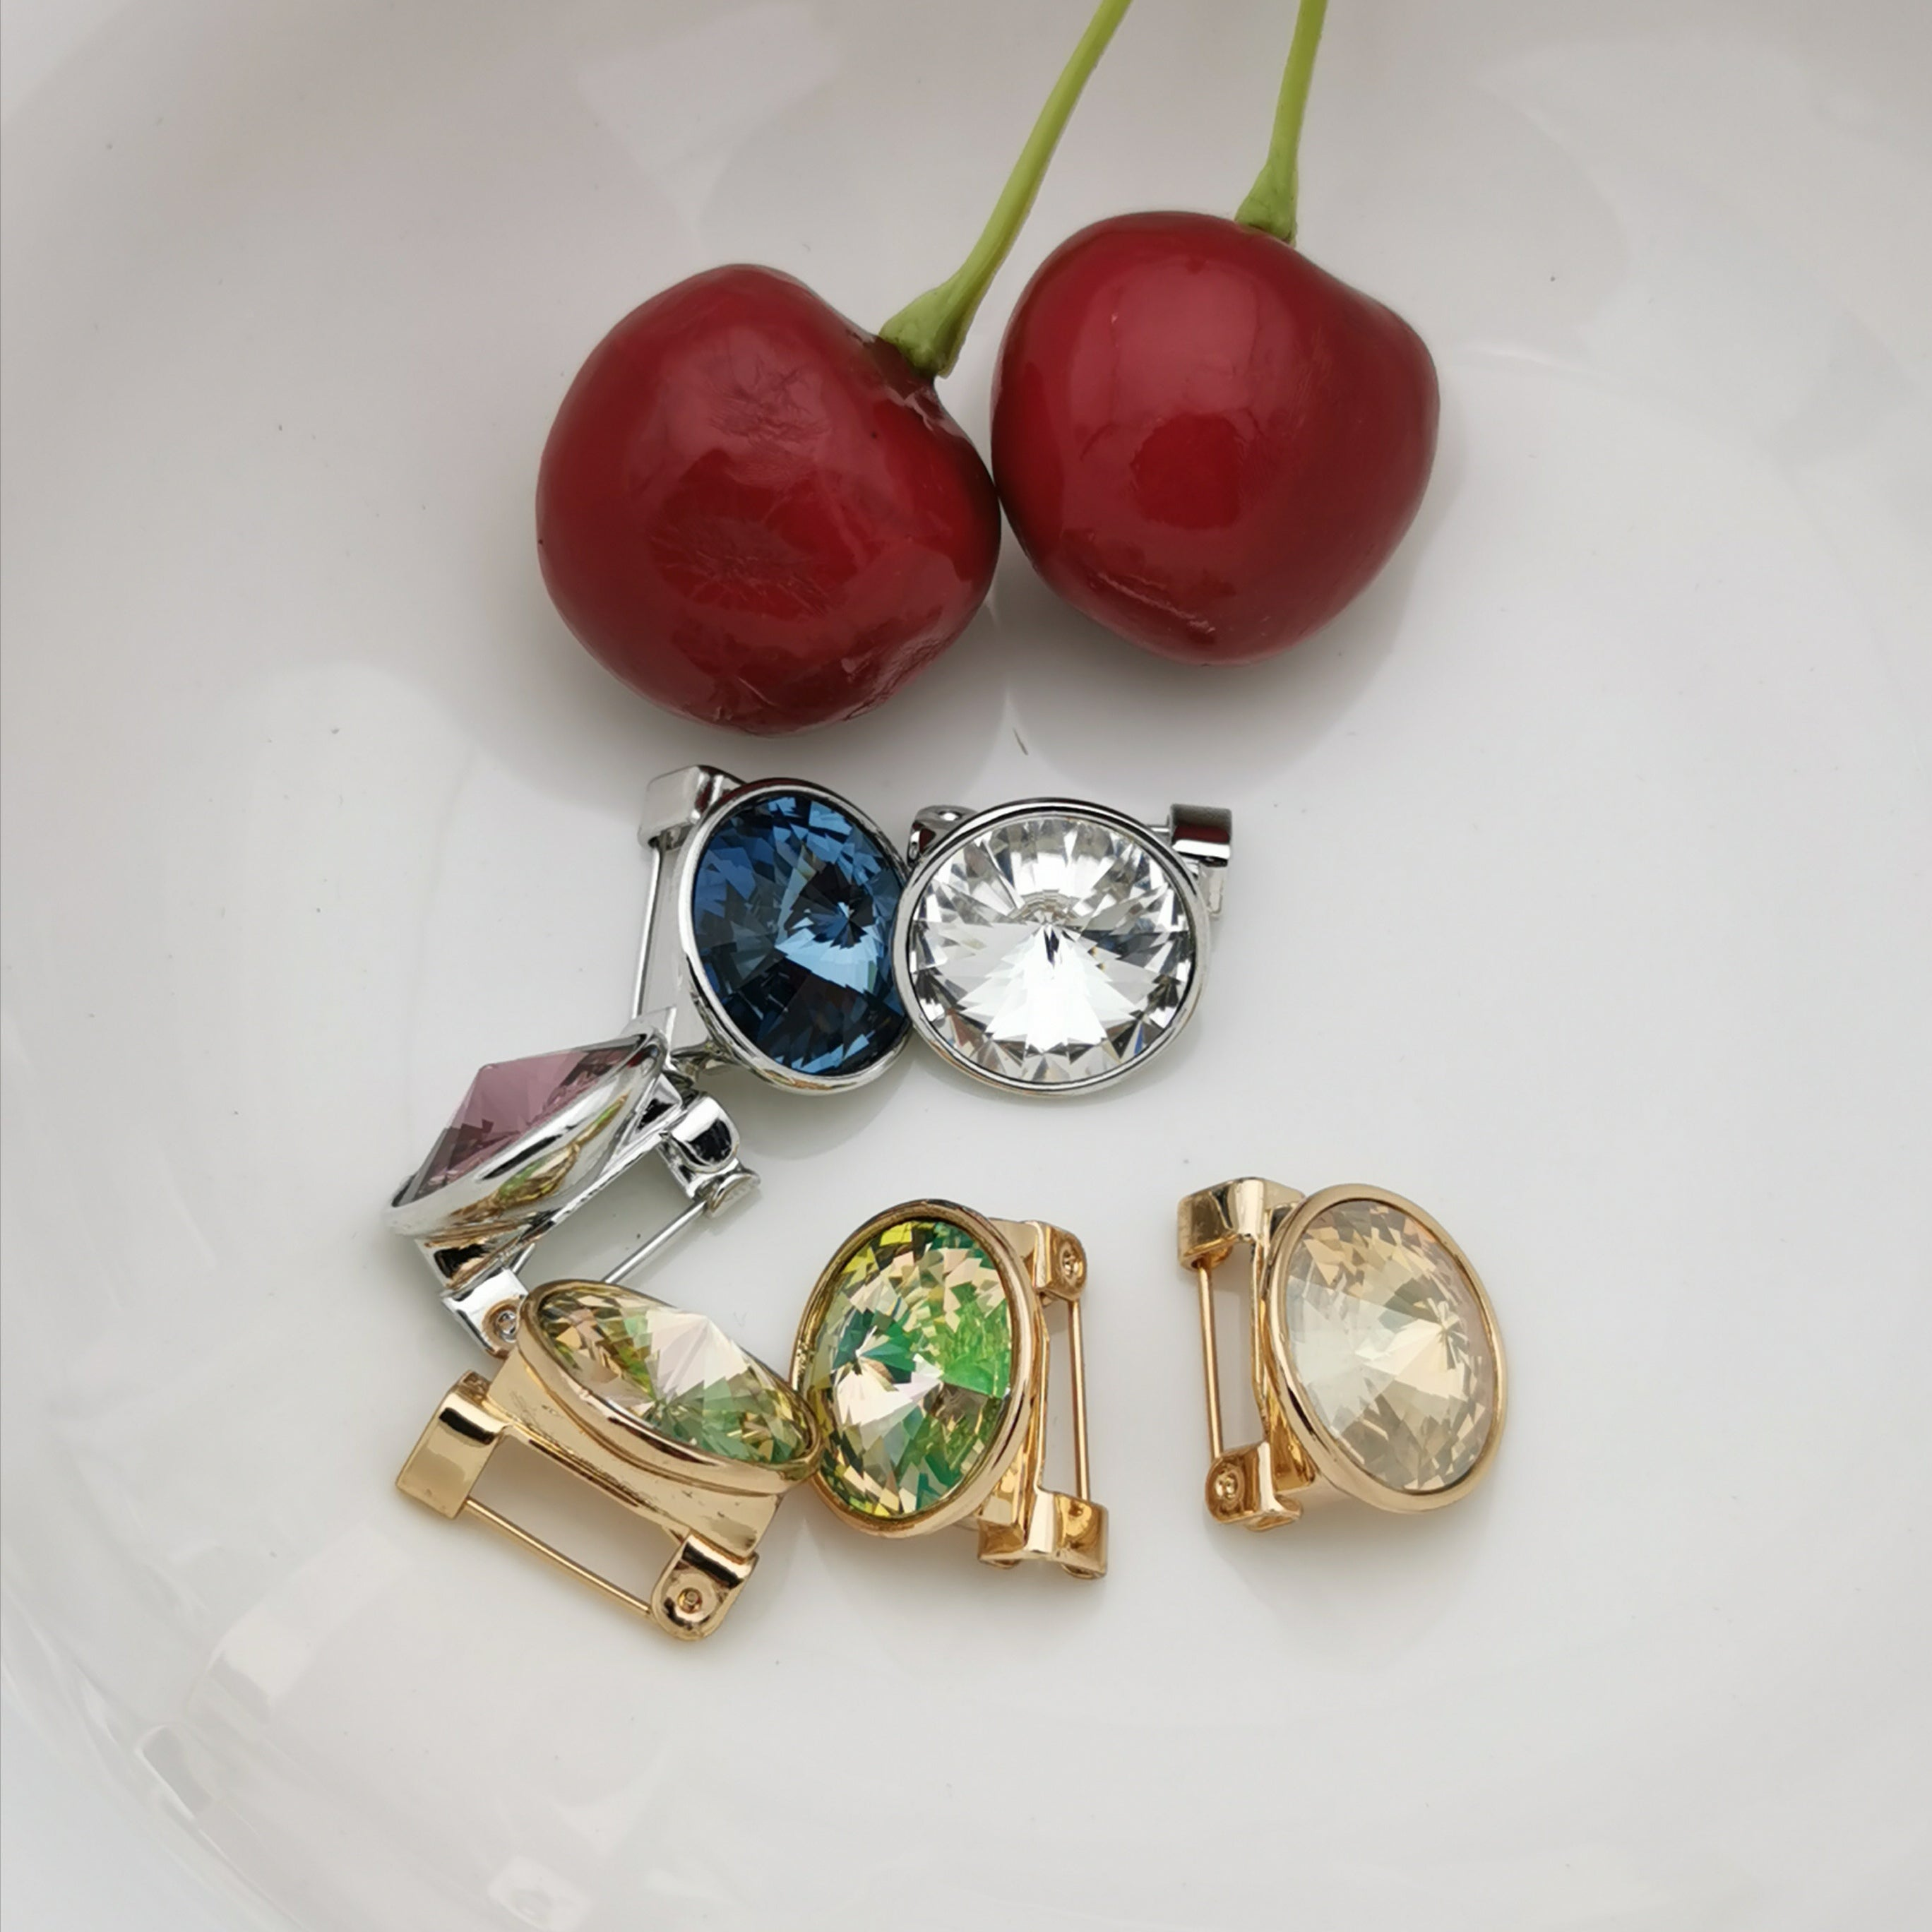 Swarovski element brooch